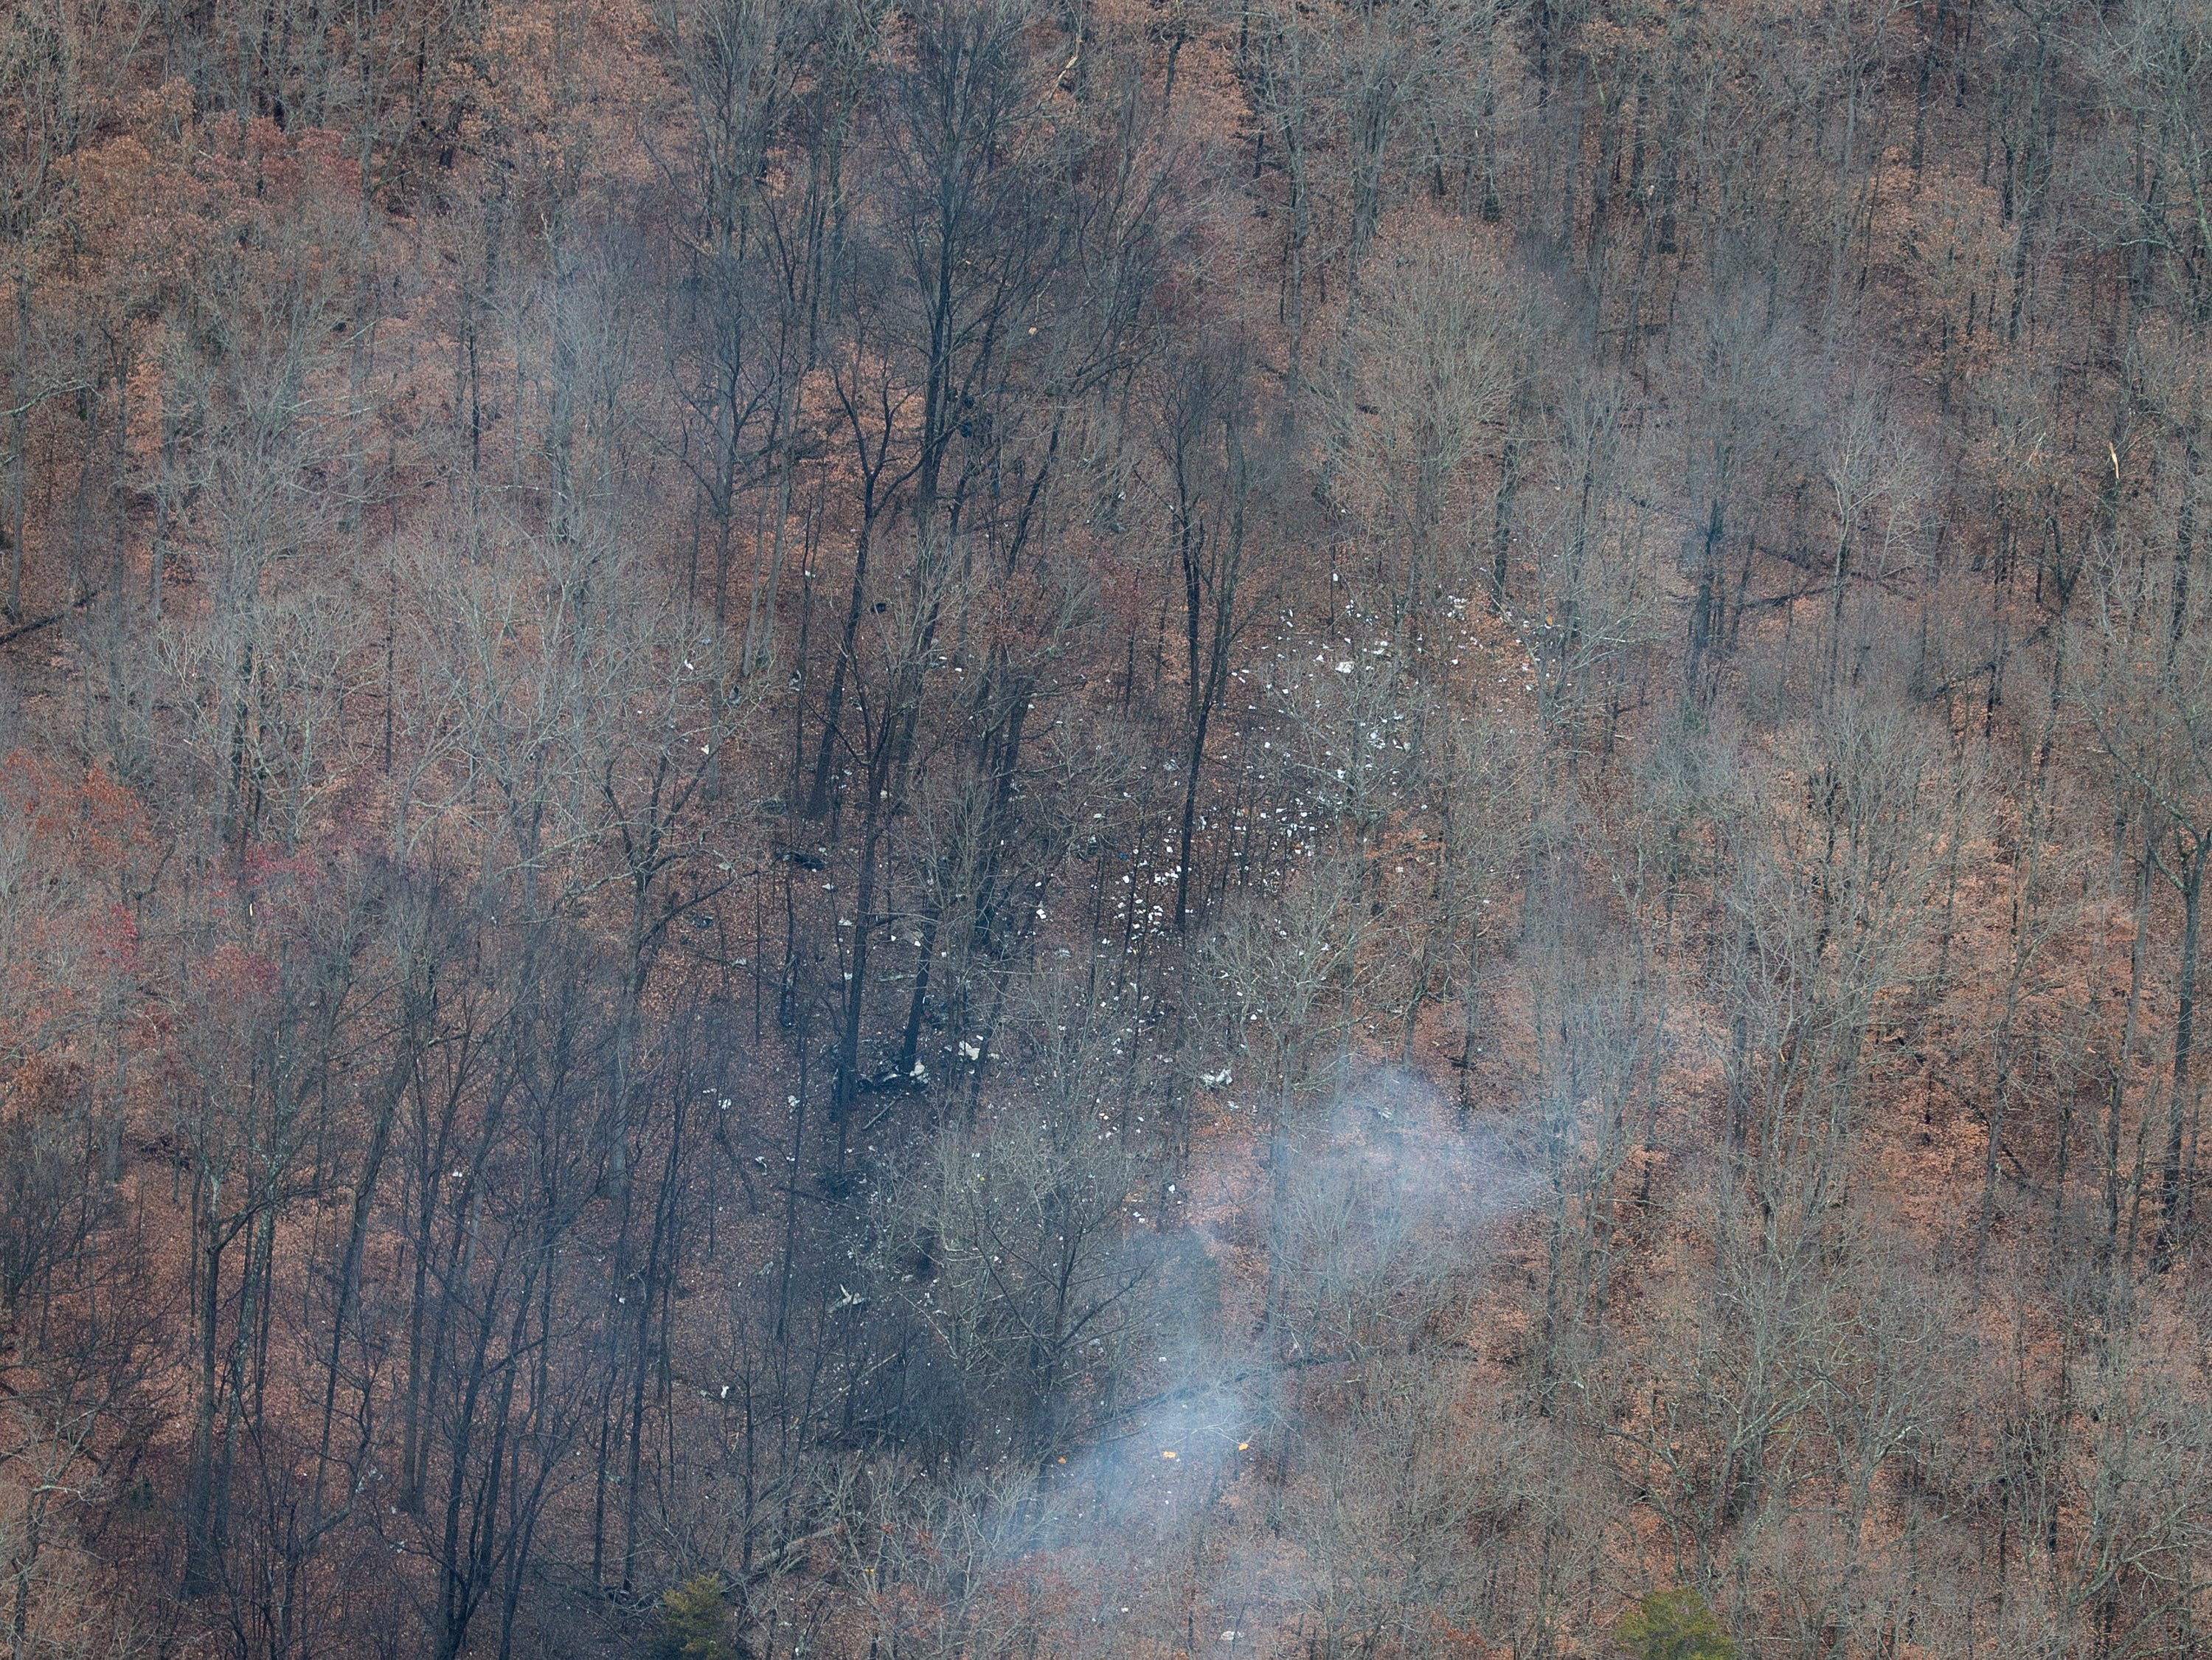 The wreckage of a small plane that crashed in a wooded area near Memphis Indiana following a takeoff from the Clark County Airport. Nov. 30, 2018.